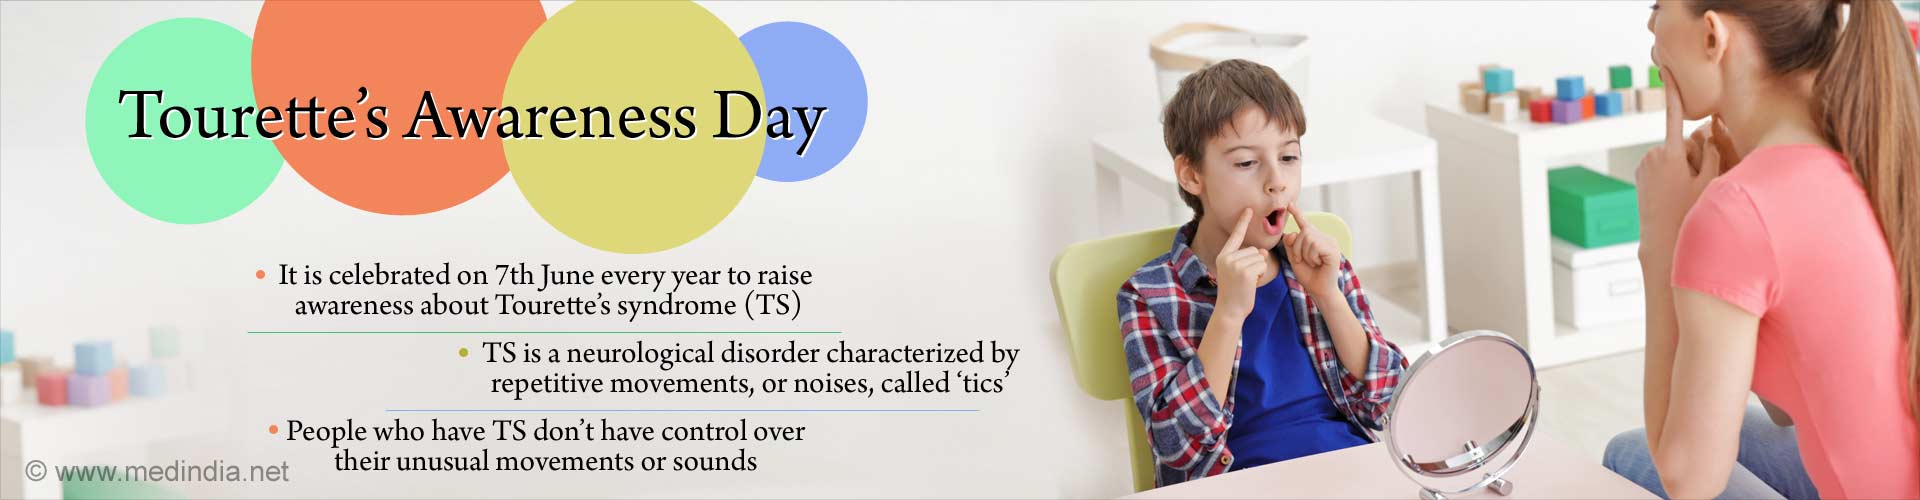 Tourette's Awareness Day. It is celebrated on 7th June every year to raise awareness about Tourette's syndrome (TS). TS is a neurological disorder characterized by repetitive movements, or noises, called 'tics.' People who have TS don't have control over their unusual movements or sounds.